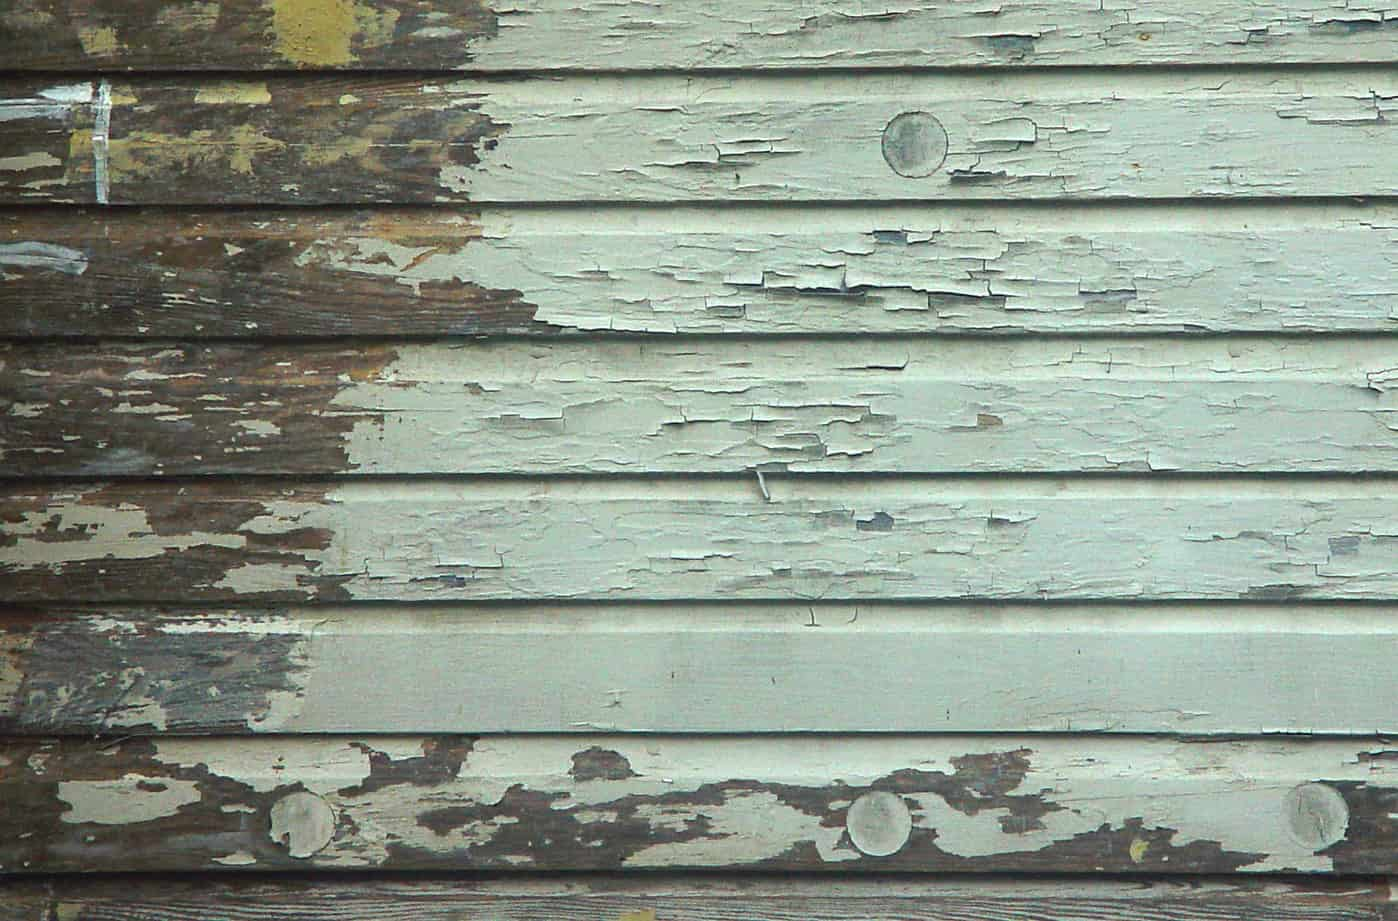 Peeling Paint From Moisture Coming Through The Wooden